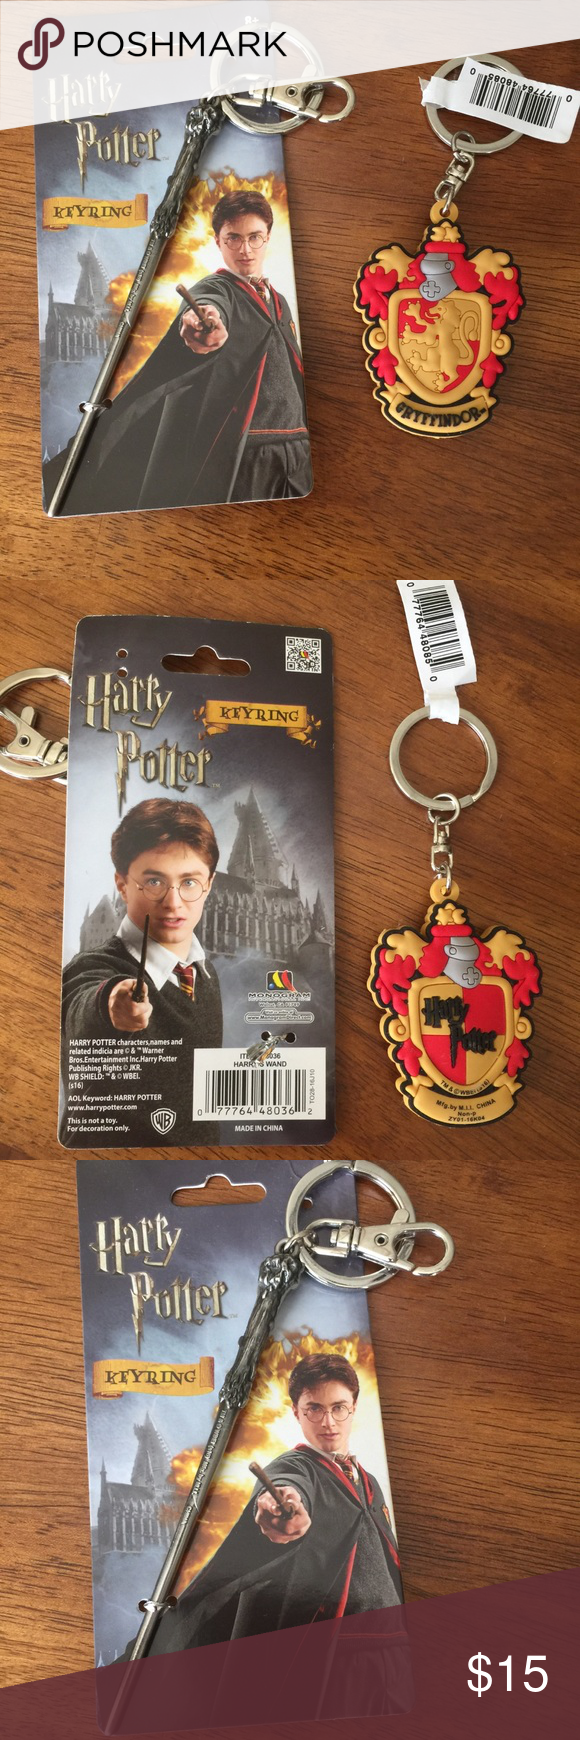 Real Book Page Harry Potter Character Keychain